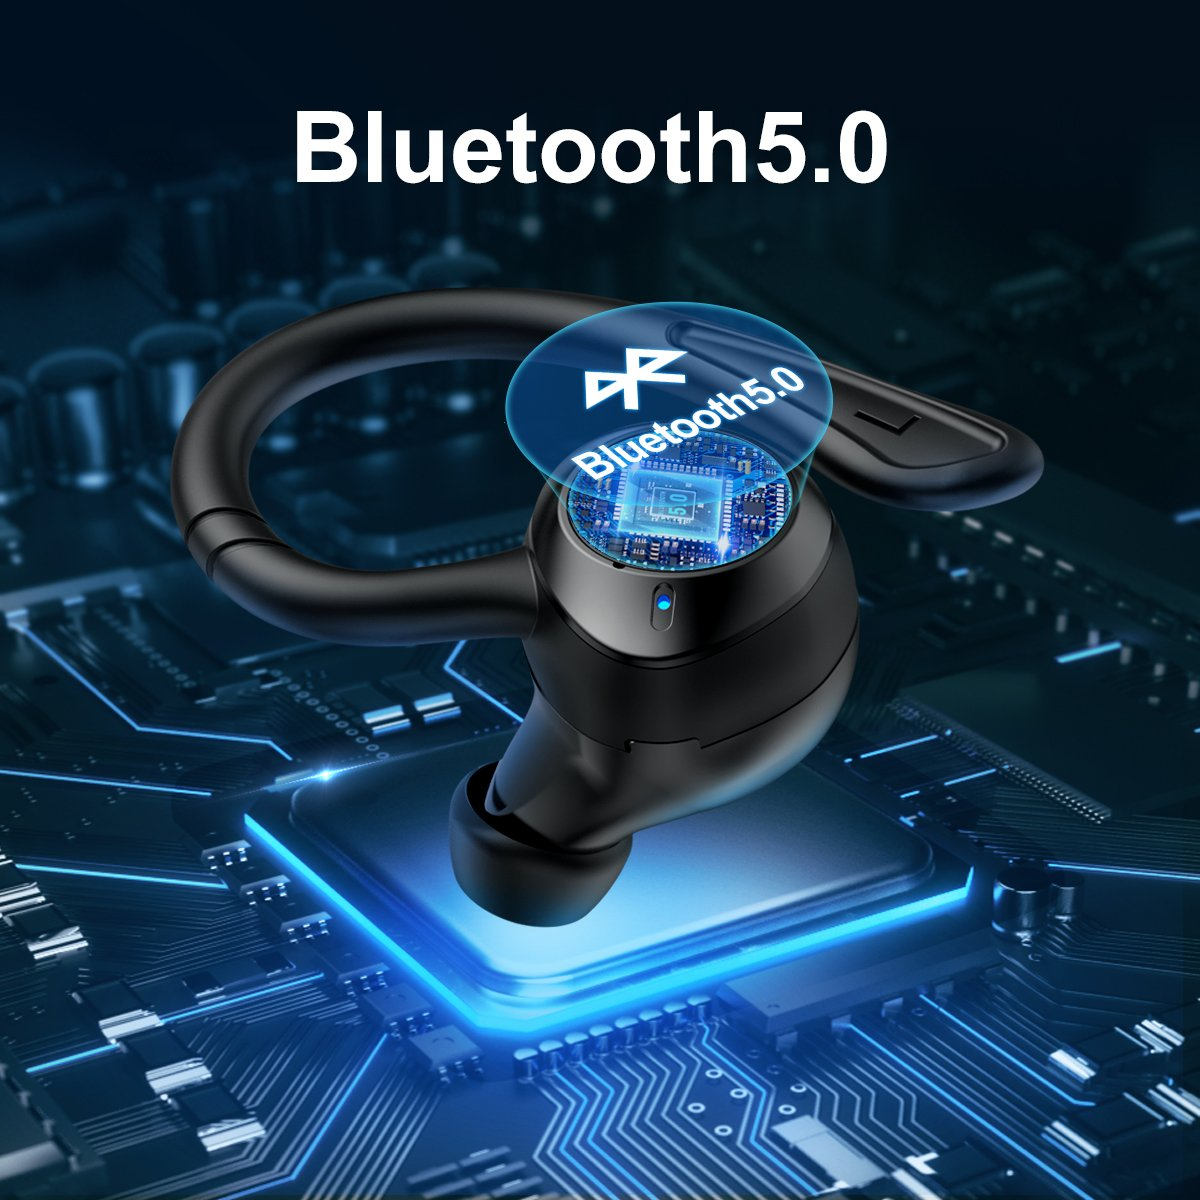 Holyhigh-Bluetooth-5-0-Wireless-Sports-Earbuds-G4-Details-3